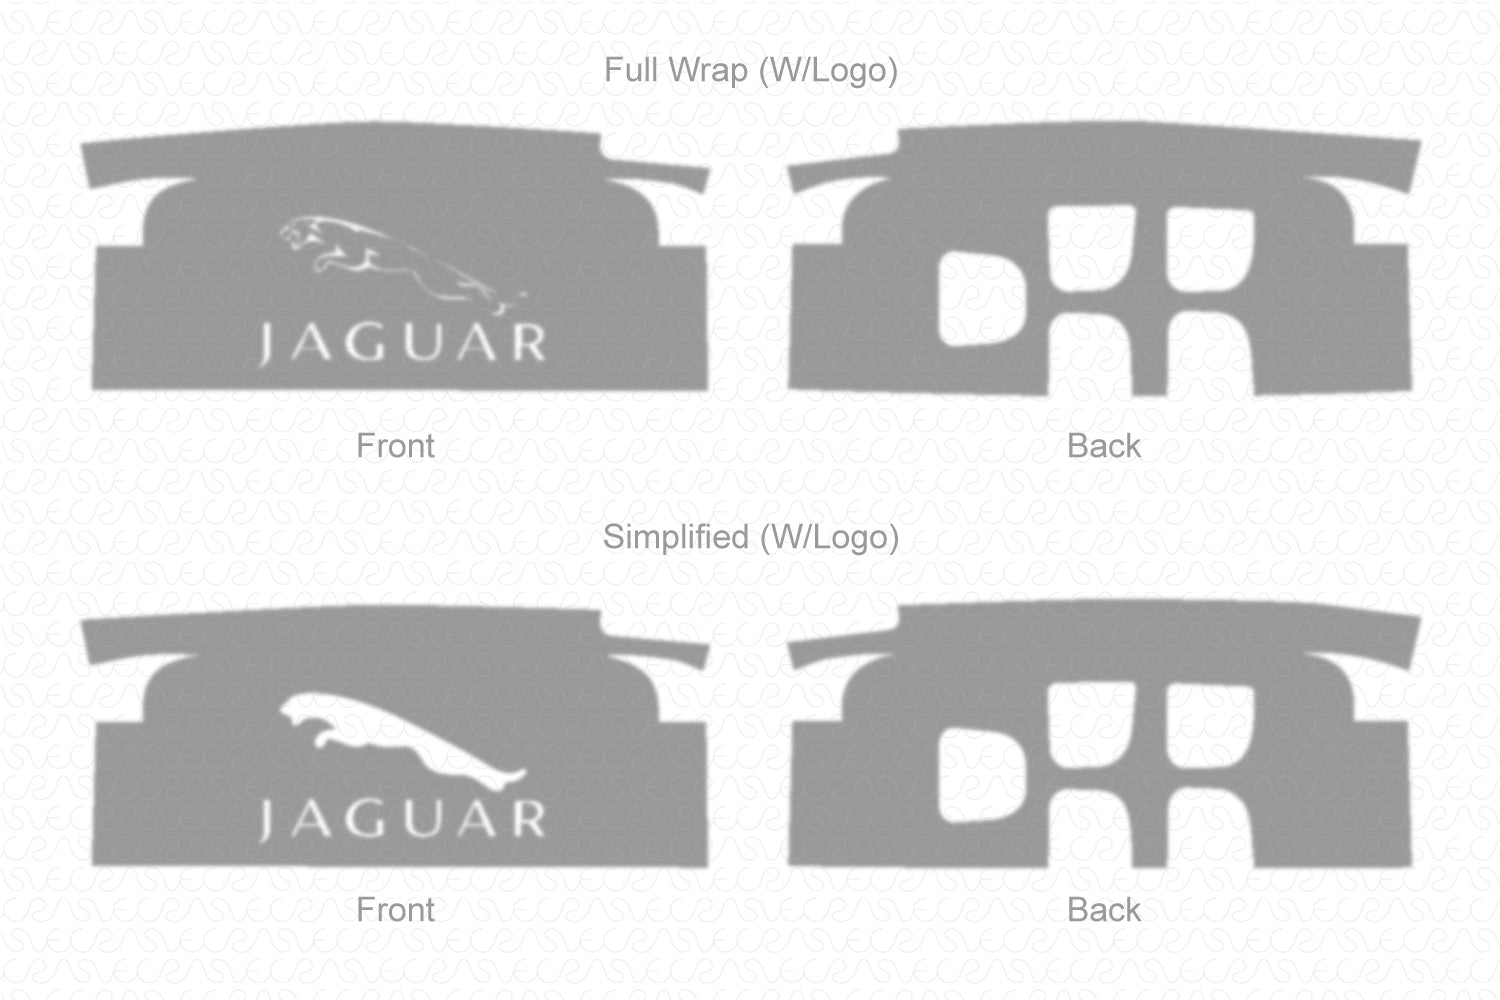 Jaguar XF Smart Key 2014 Wrap Template Cut File